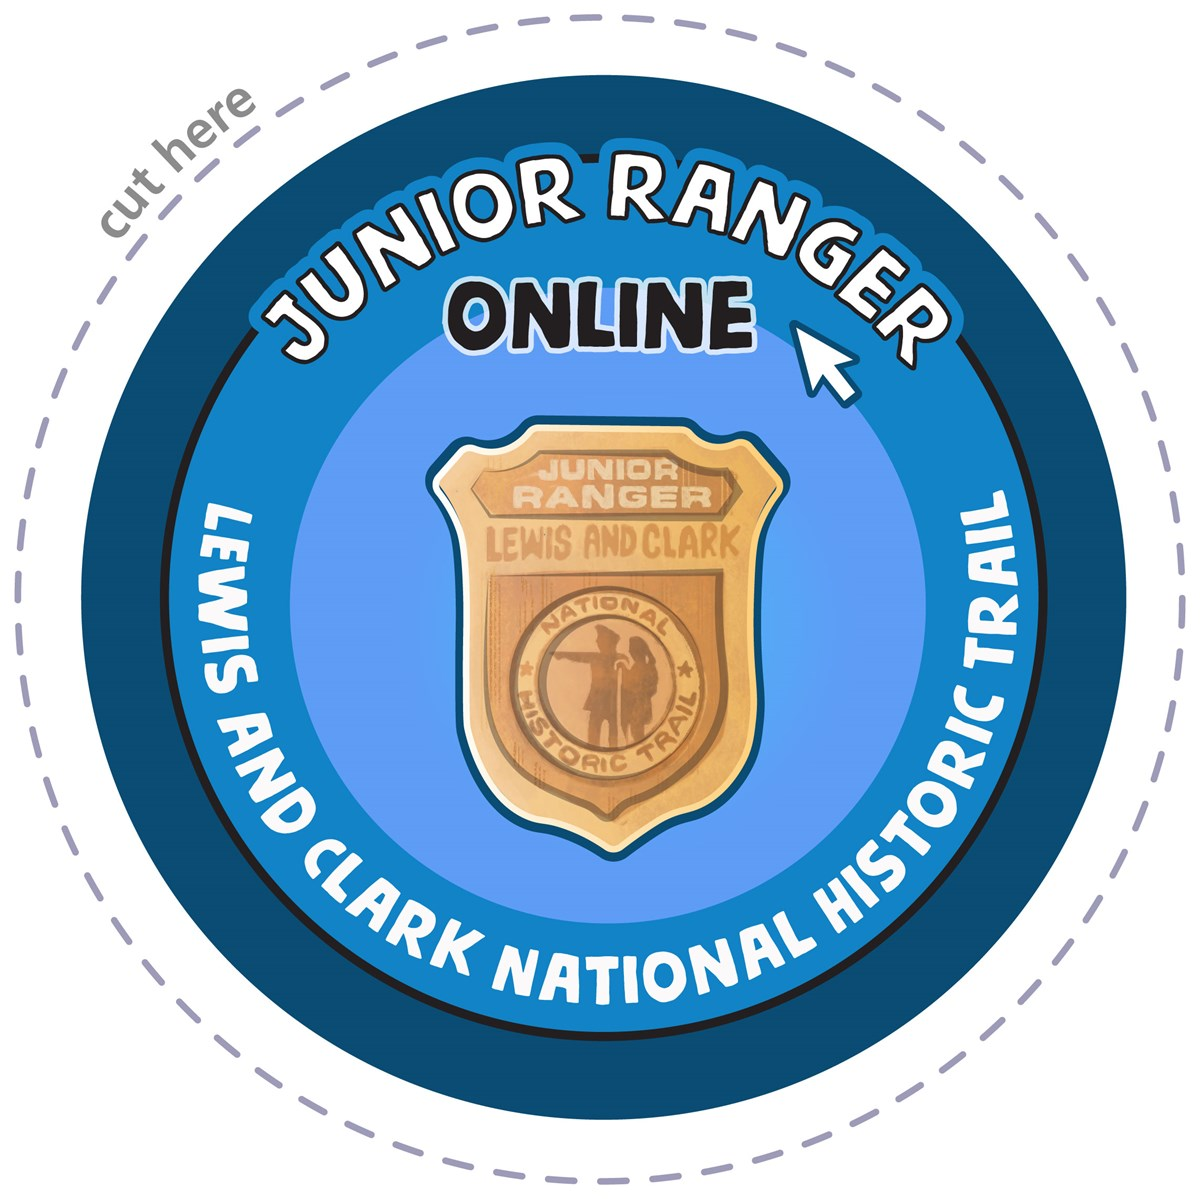 Junior Ranger Online. Lewis and Clark National Historic Trail. Gold badge reads: Junior Ranger. Lewis and Clark. Silhouette of two explorers. Blue background.